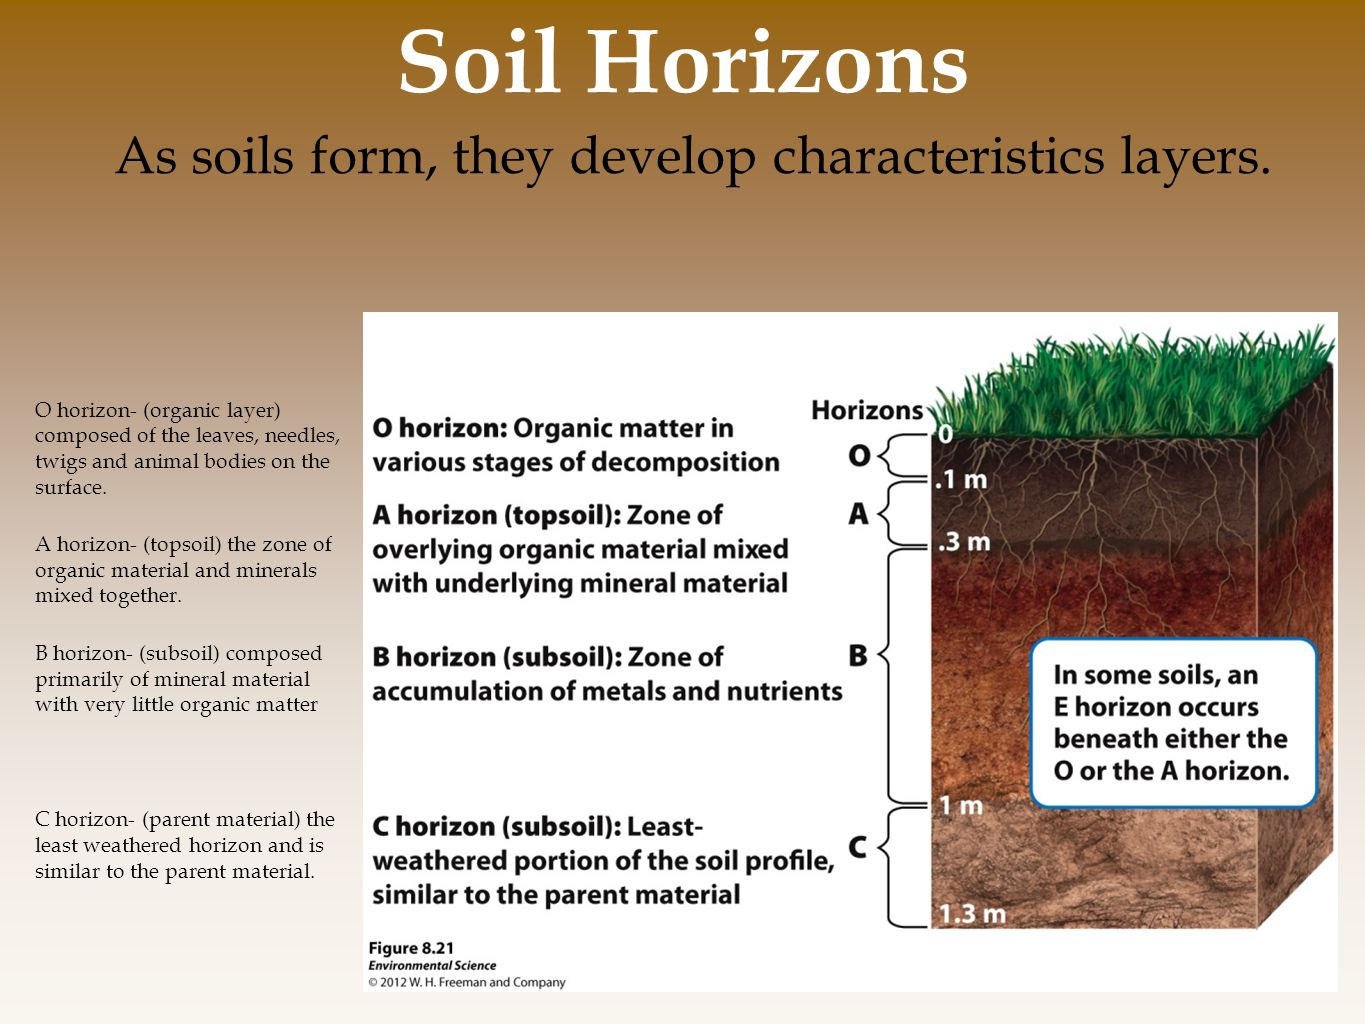 As soils form, they develop characteristics layers.